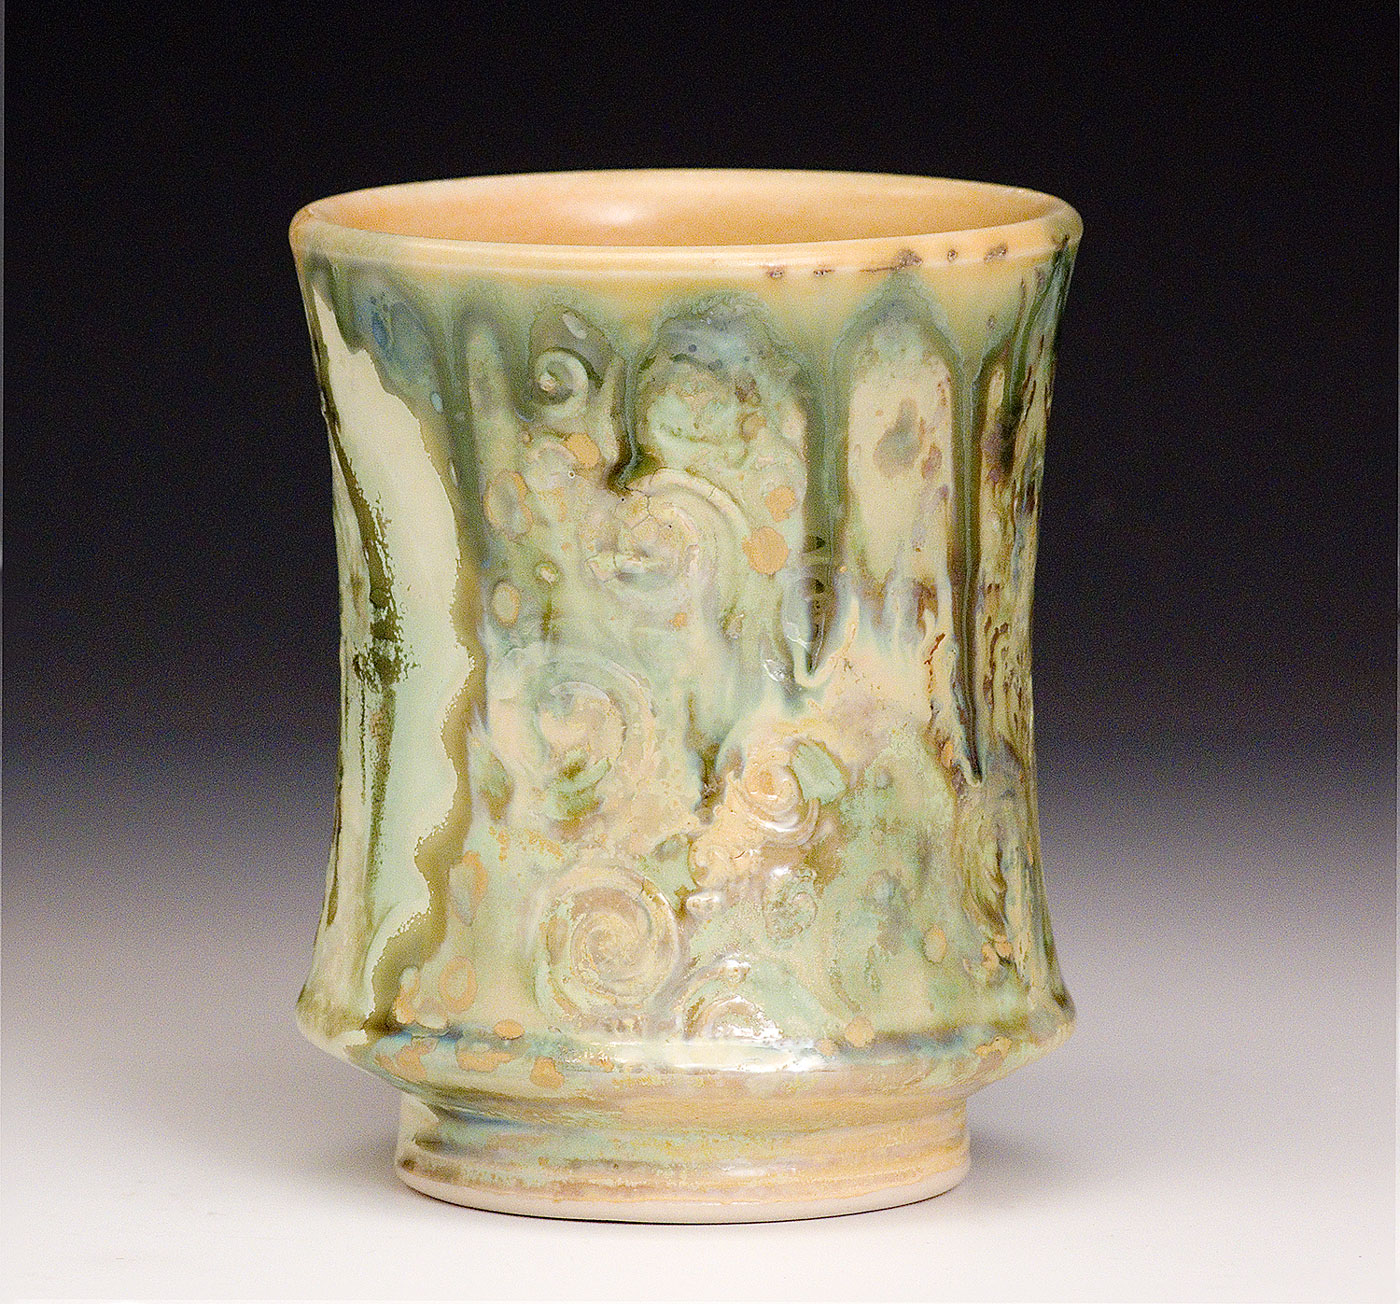 Ceramic-Art-Cup-Samantha-Henneke-Seagrove-North-Carolina.jpg